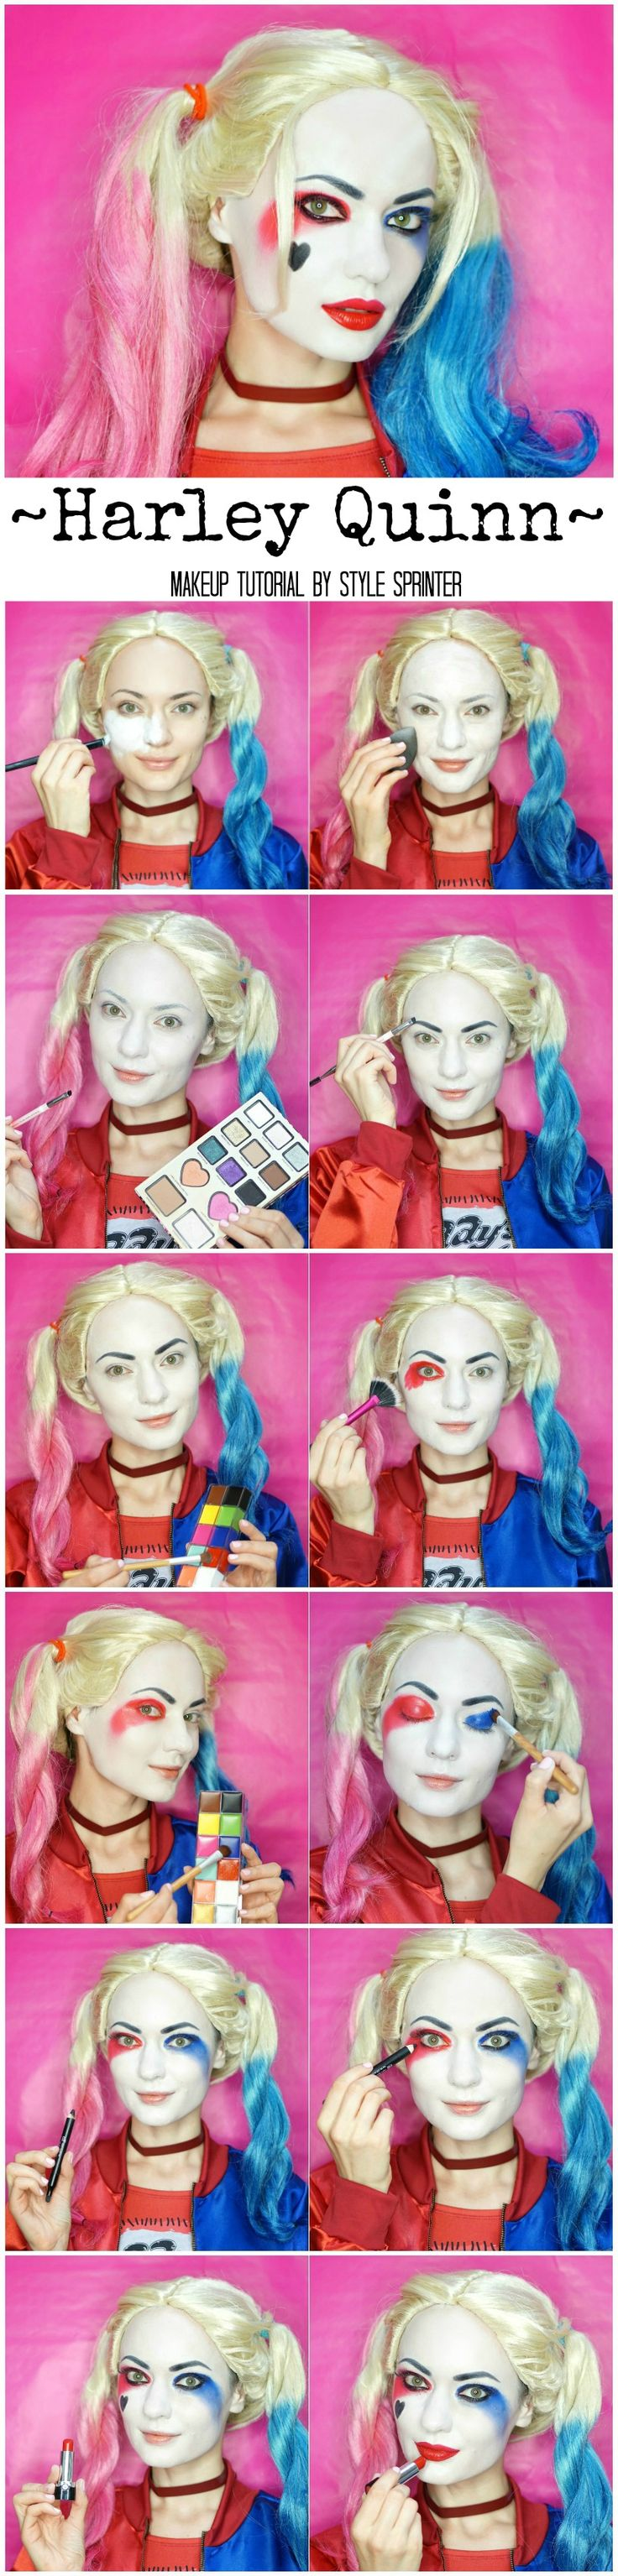 Harley Quinn Makeup Tutorial http://stylesprinter.com/harley-quinn-makeup-tutorial/ @SuicideSquadWB #SuicideSquad